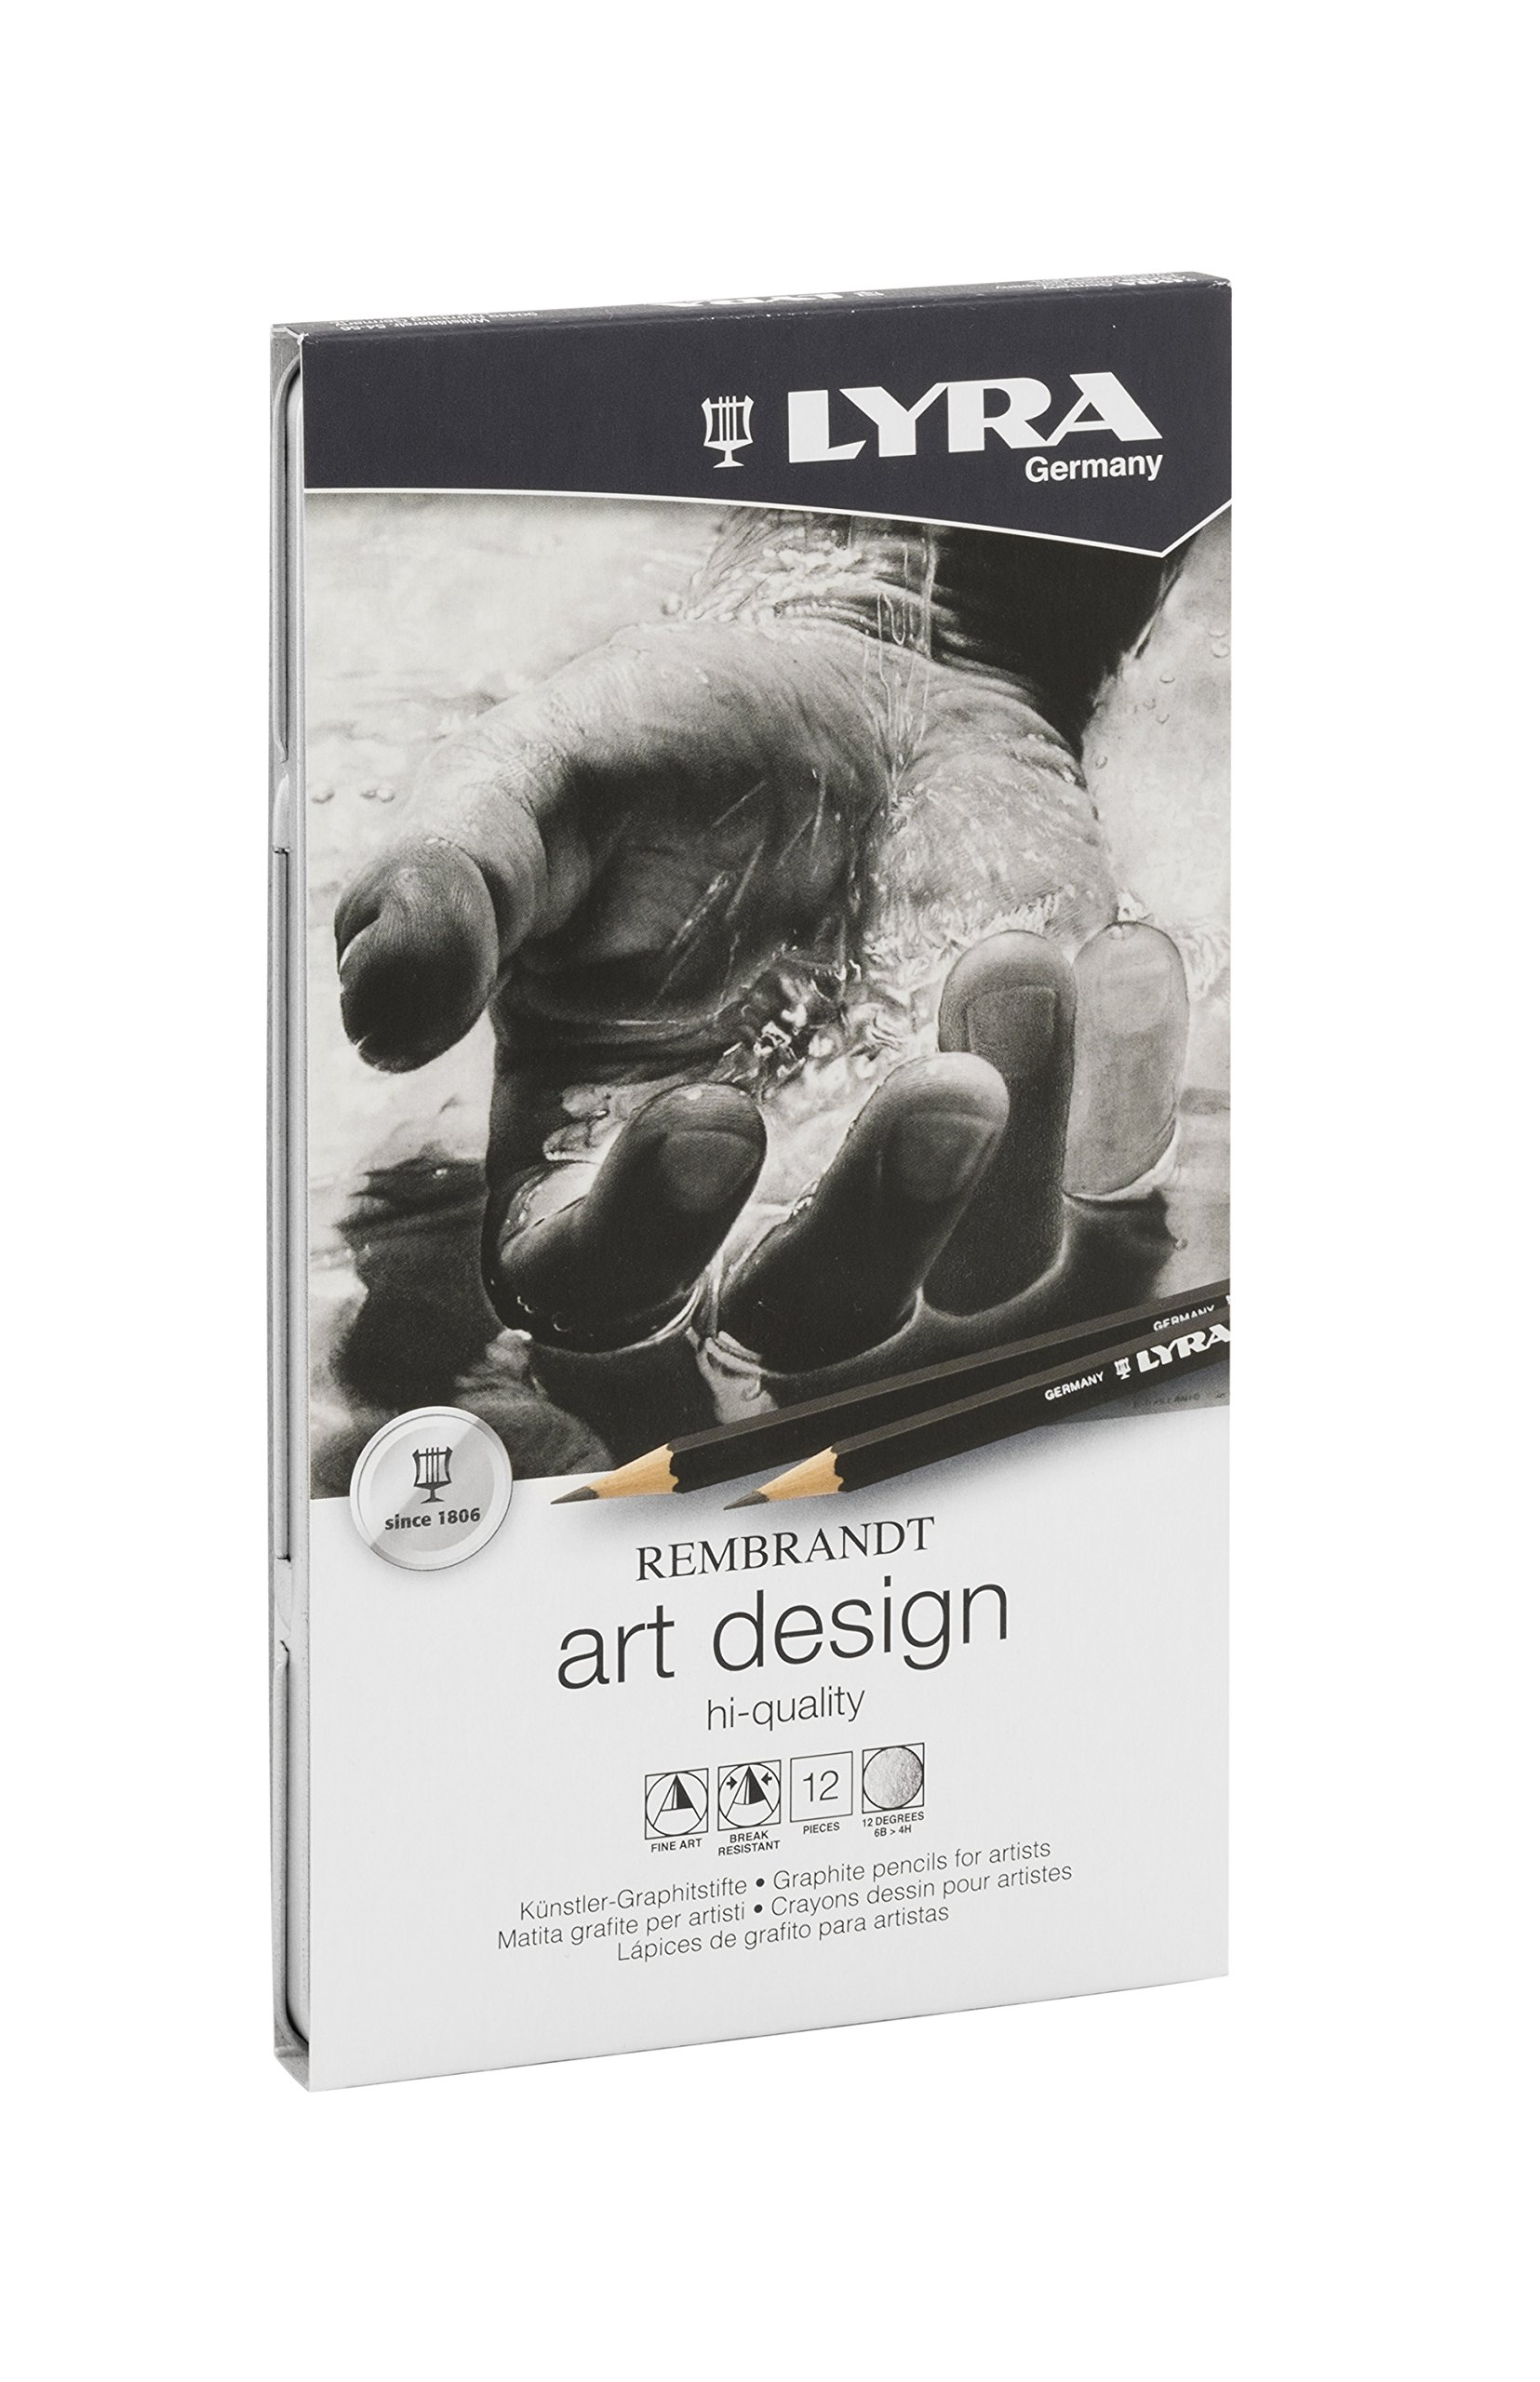 LYRA Rembrandt Art Design Drawing Pencils, Set of 12 Pencils, Assorted Degrees (1111120),Black